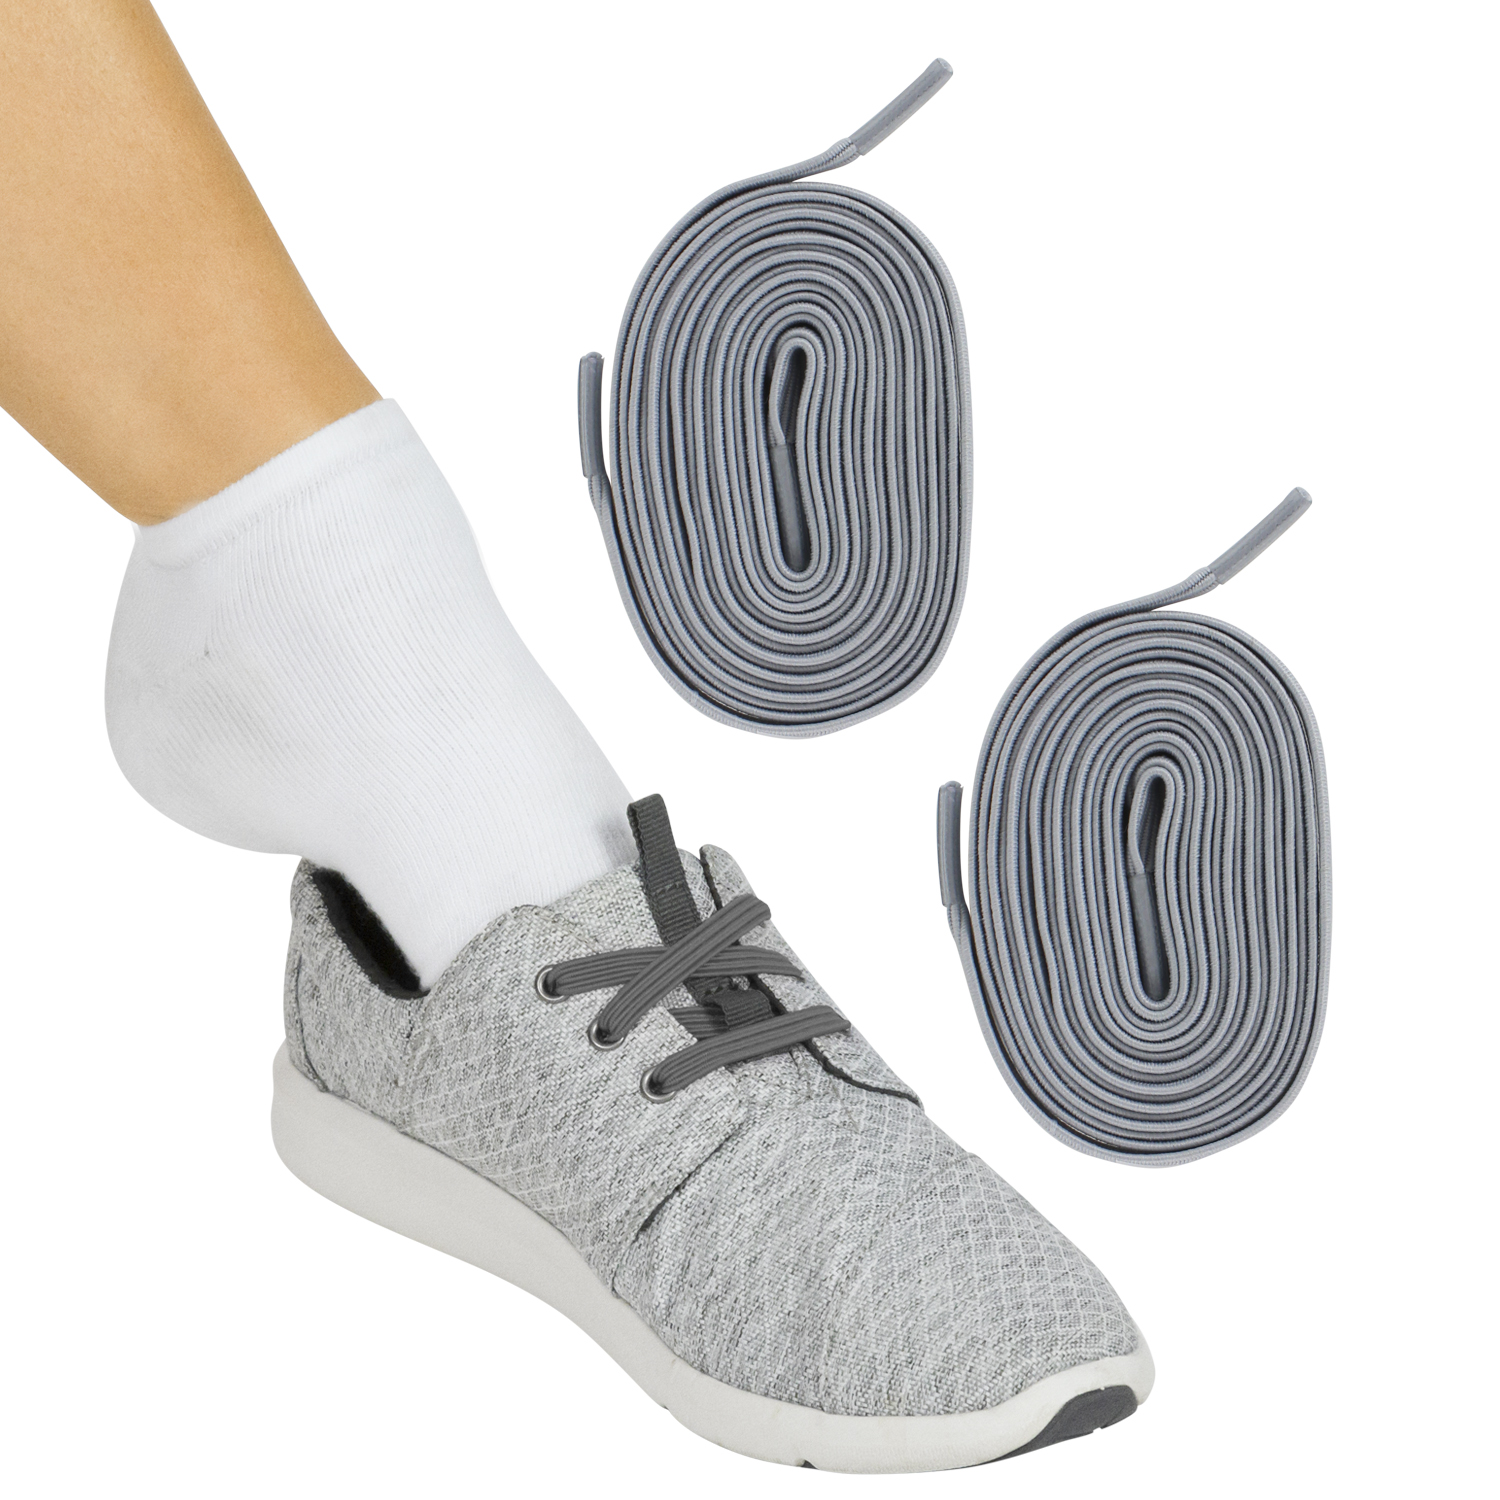 Vive Elastic Shoe Laces (Gray Pair) - No Tie, Lace Up, Flat Replacement Shoelaces for Men, Women, Sports, Running, Adults, Kids, Tennis, Disabled, Elderly, Dress Assist - One Size Long, Stretch Band